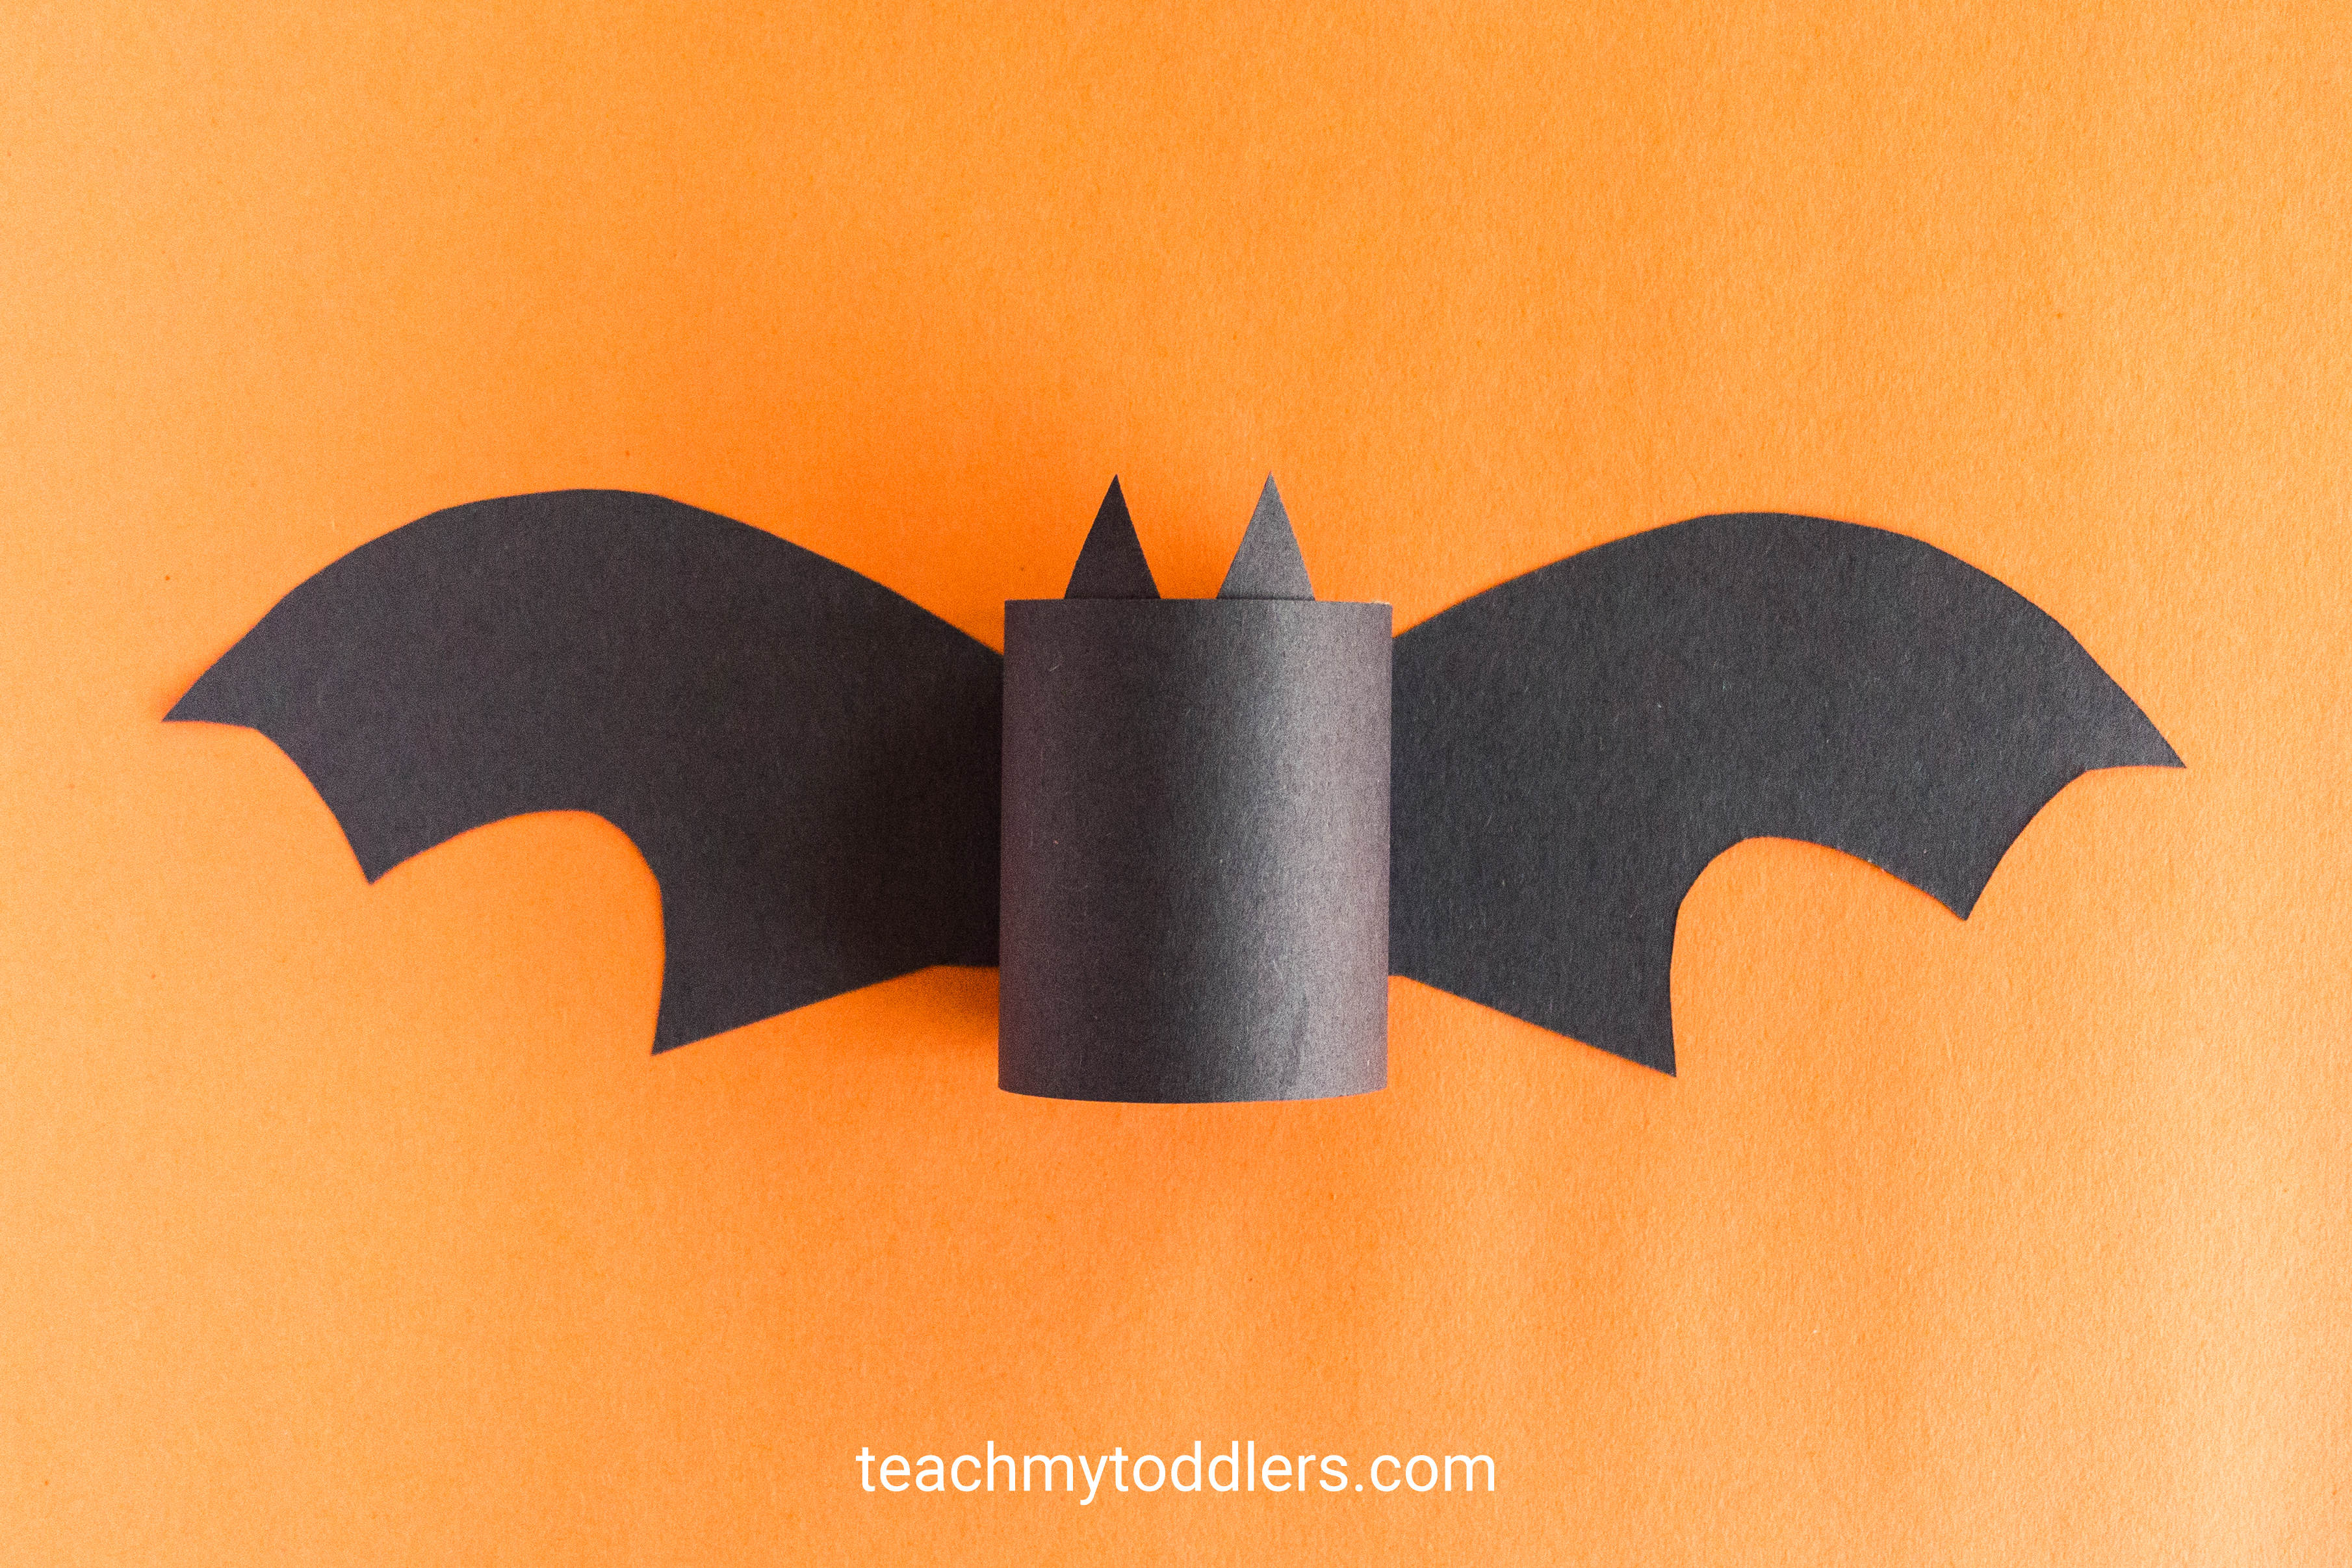 Discover how to make this paper bat craft for your toddler's halloween activity